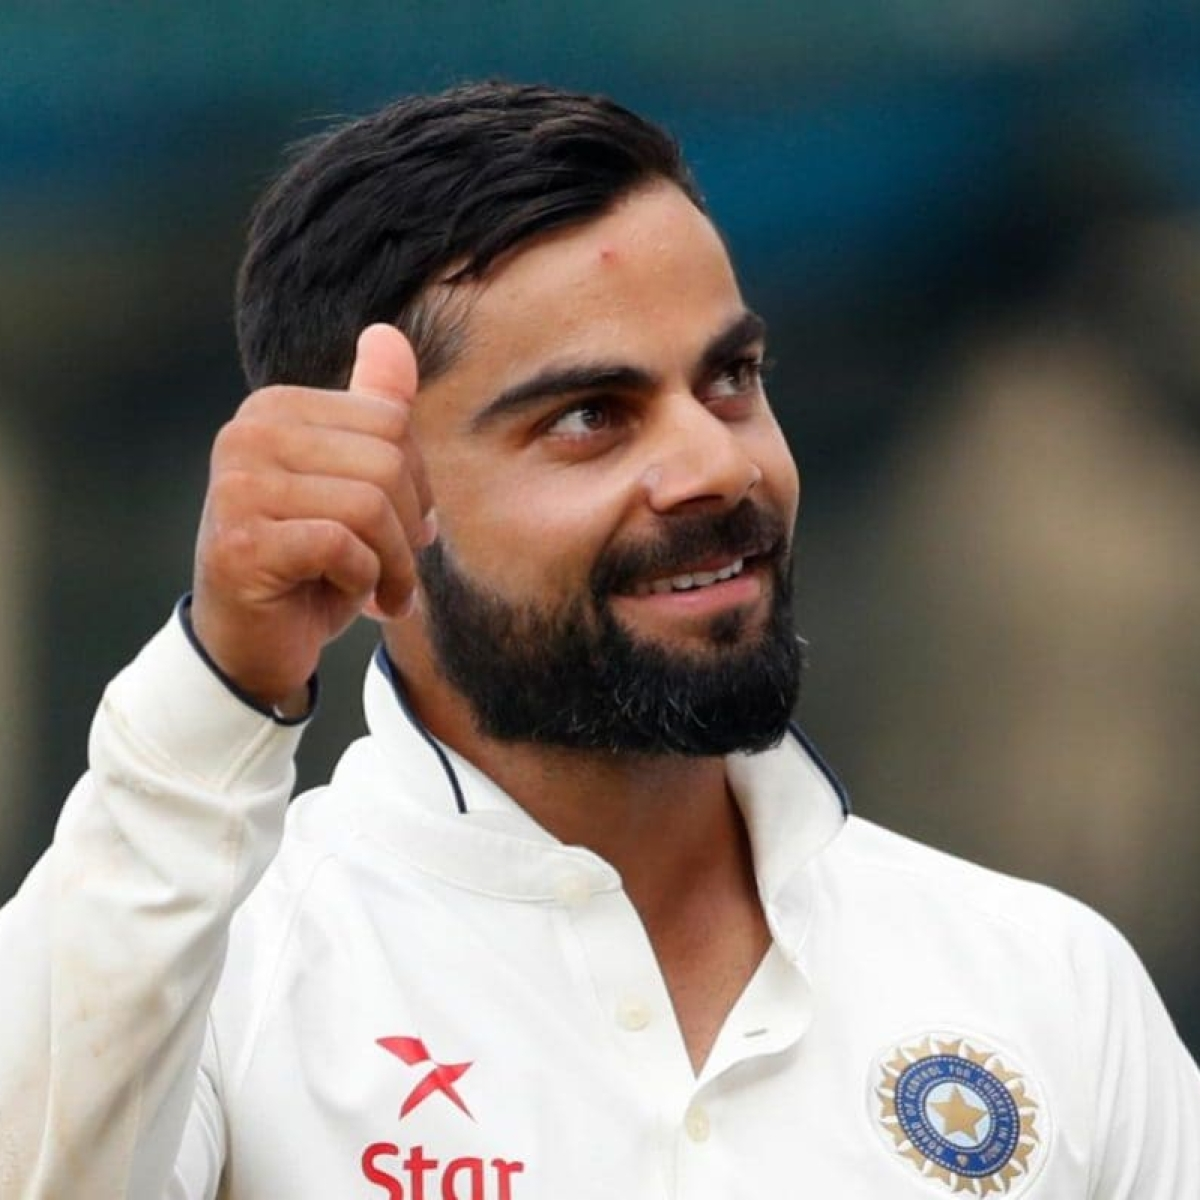 Father-to-be Virat Kohli leaves Australian shores for India after pep talk to teammates